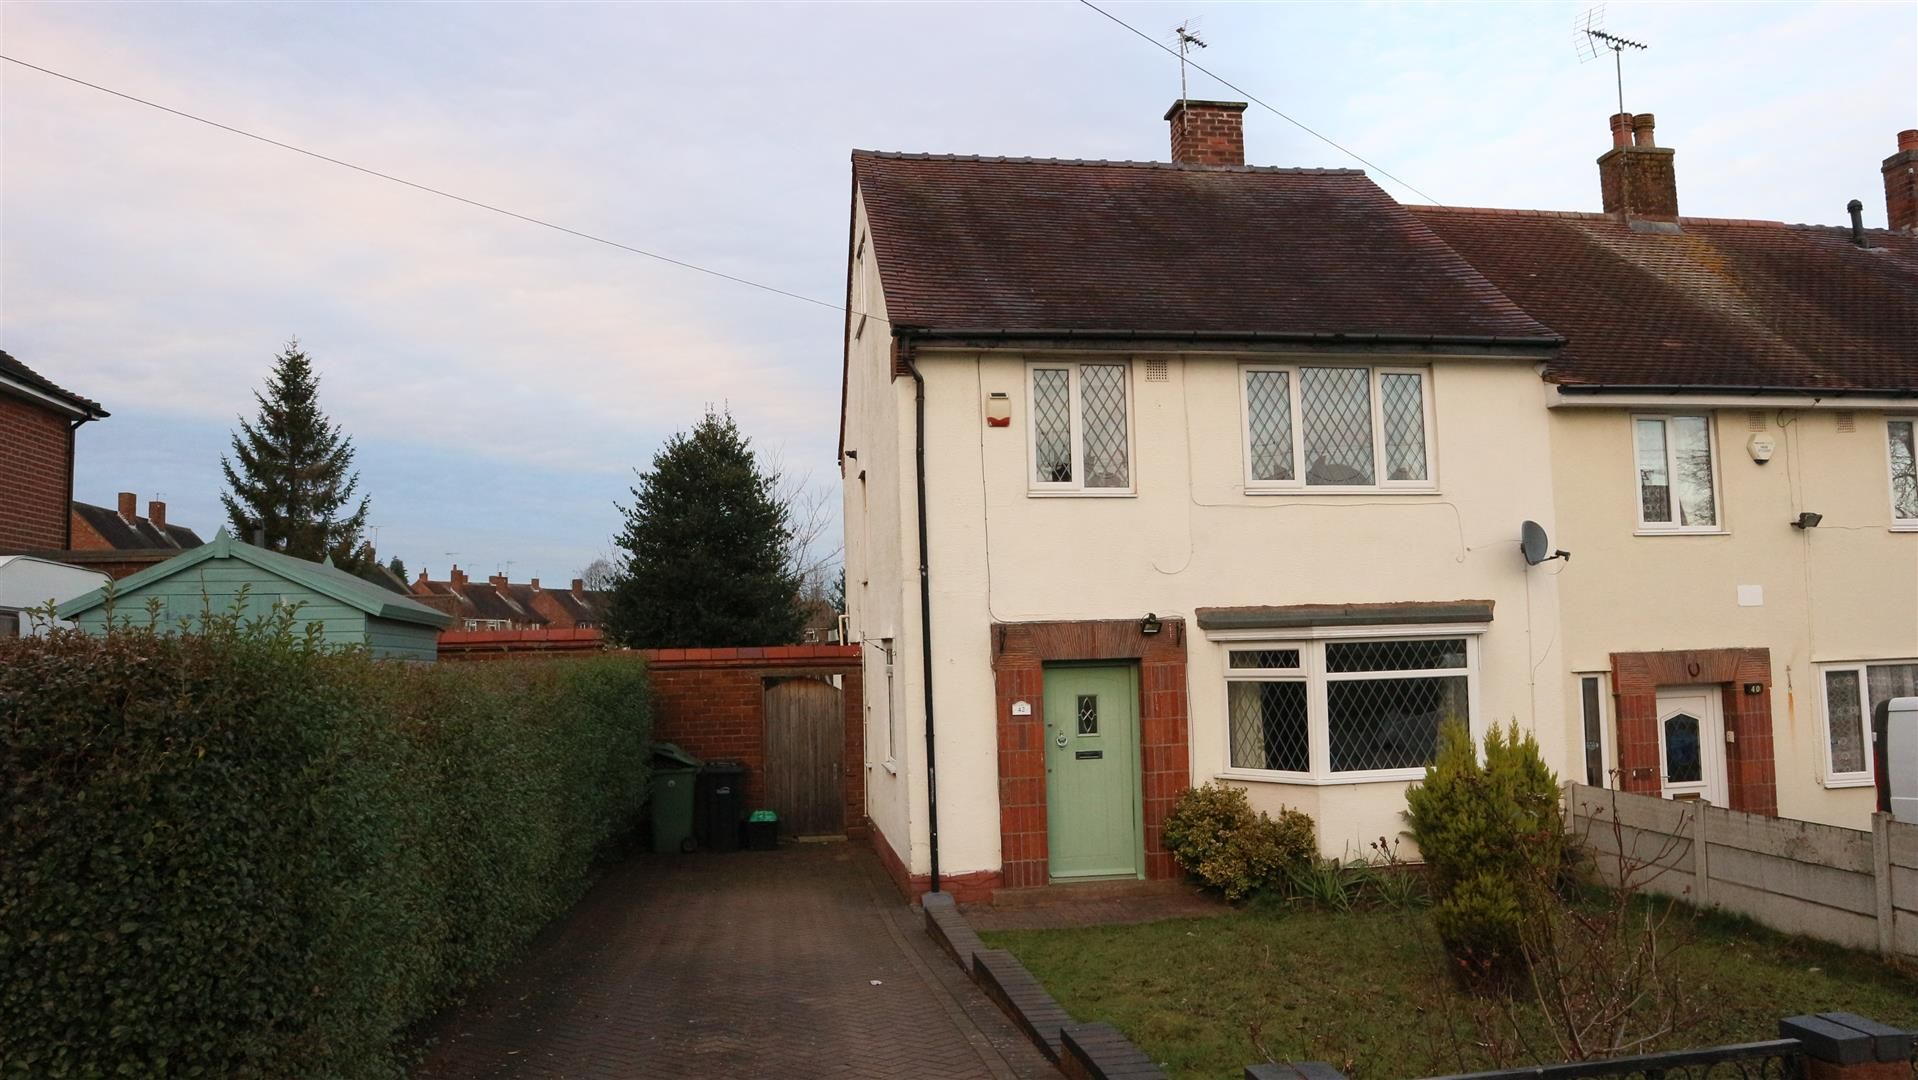 3 bed end-of-terrace for sale in Norton, DY8